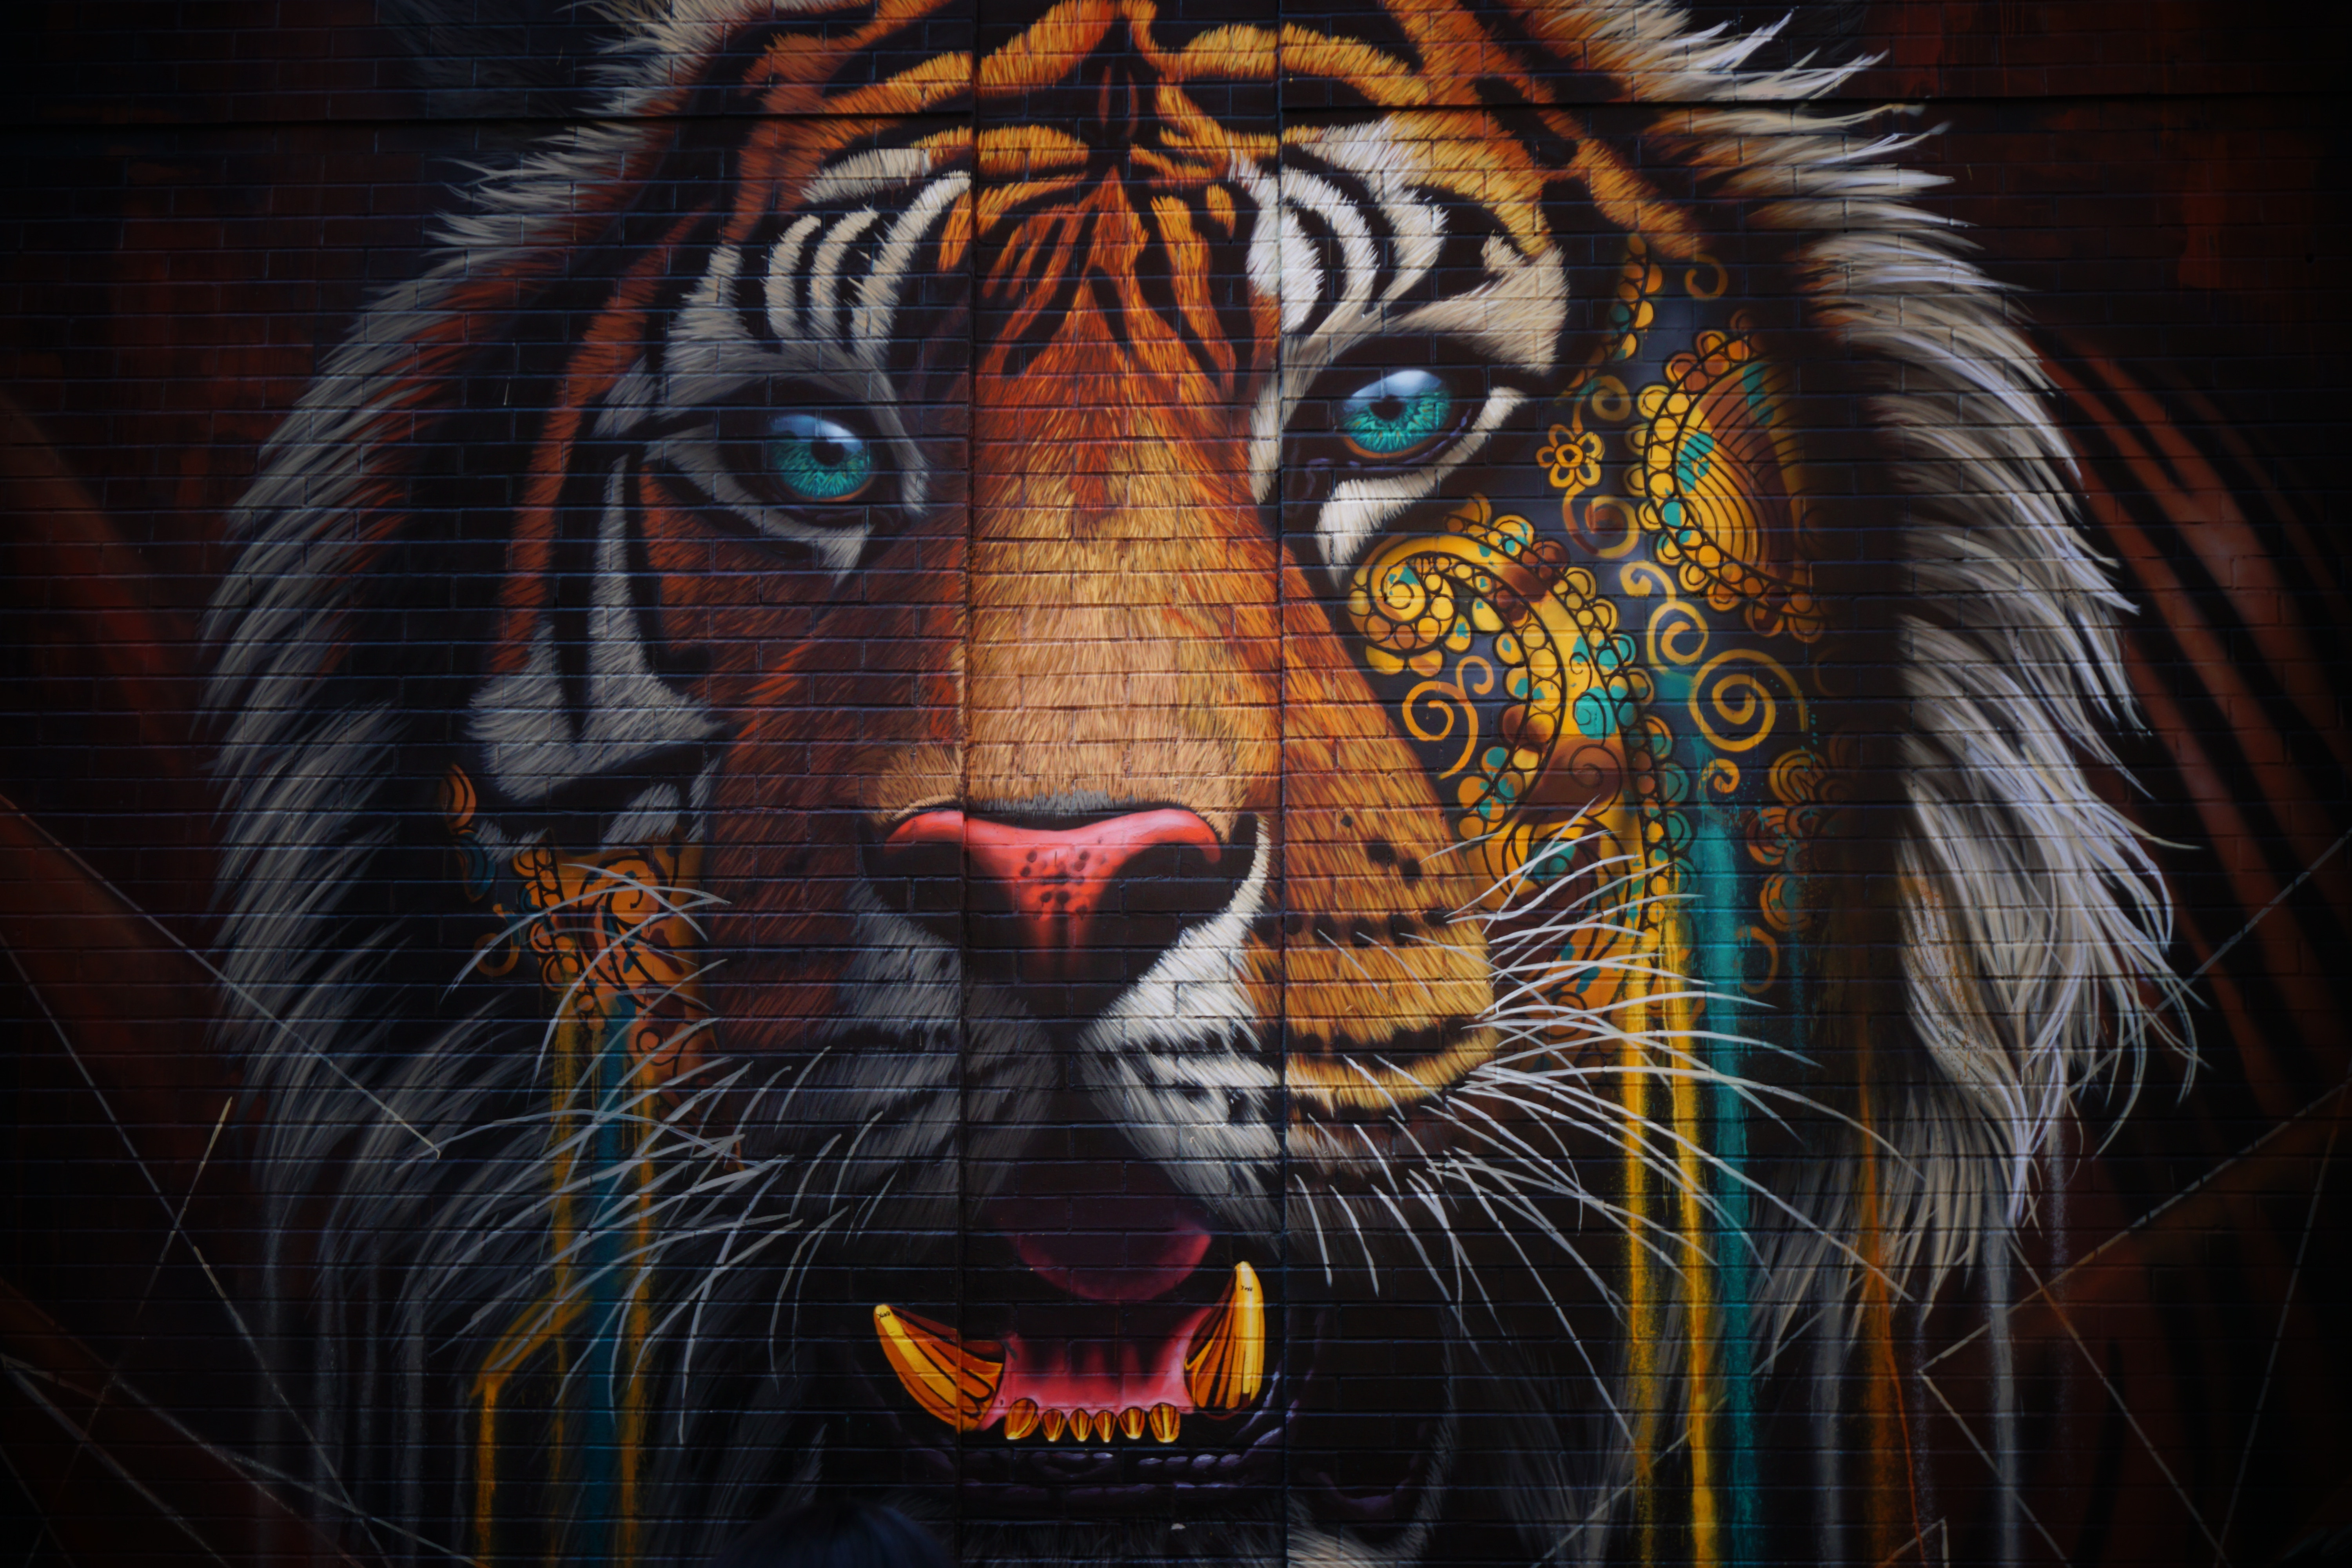 130475 download wallpaper Animals, Multicolored, Motley, Wall, Tiger, Graffiti, Street Art screensavers and pictures for free